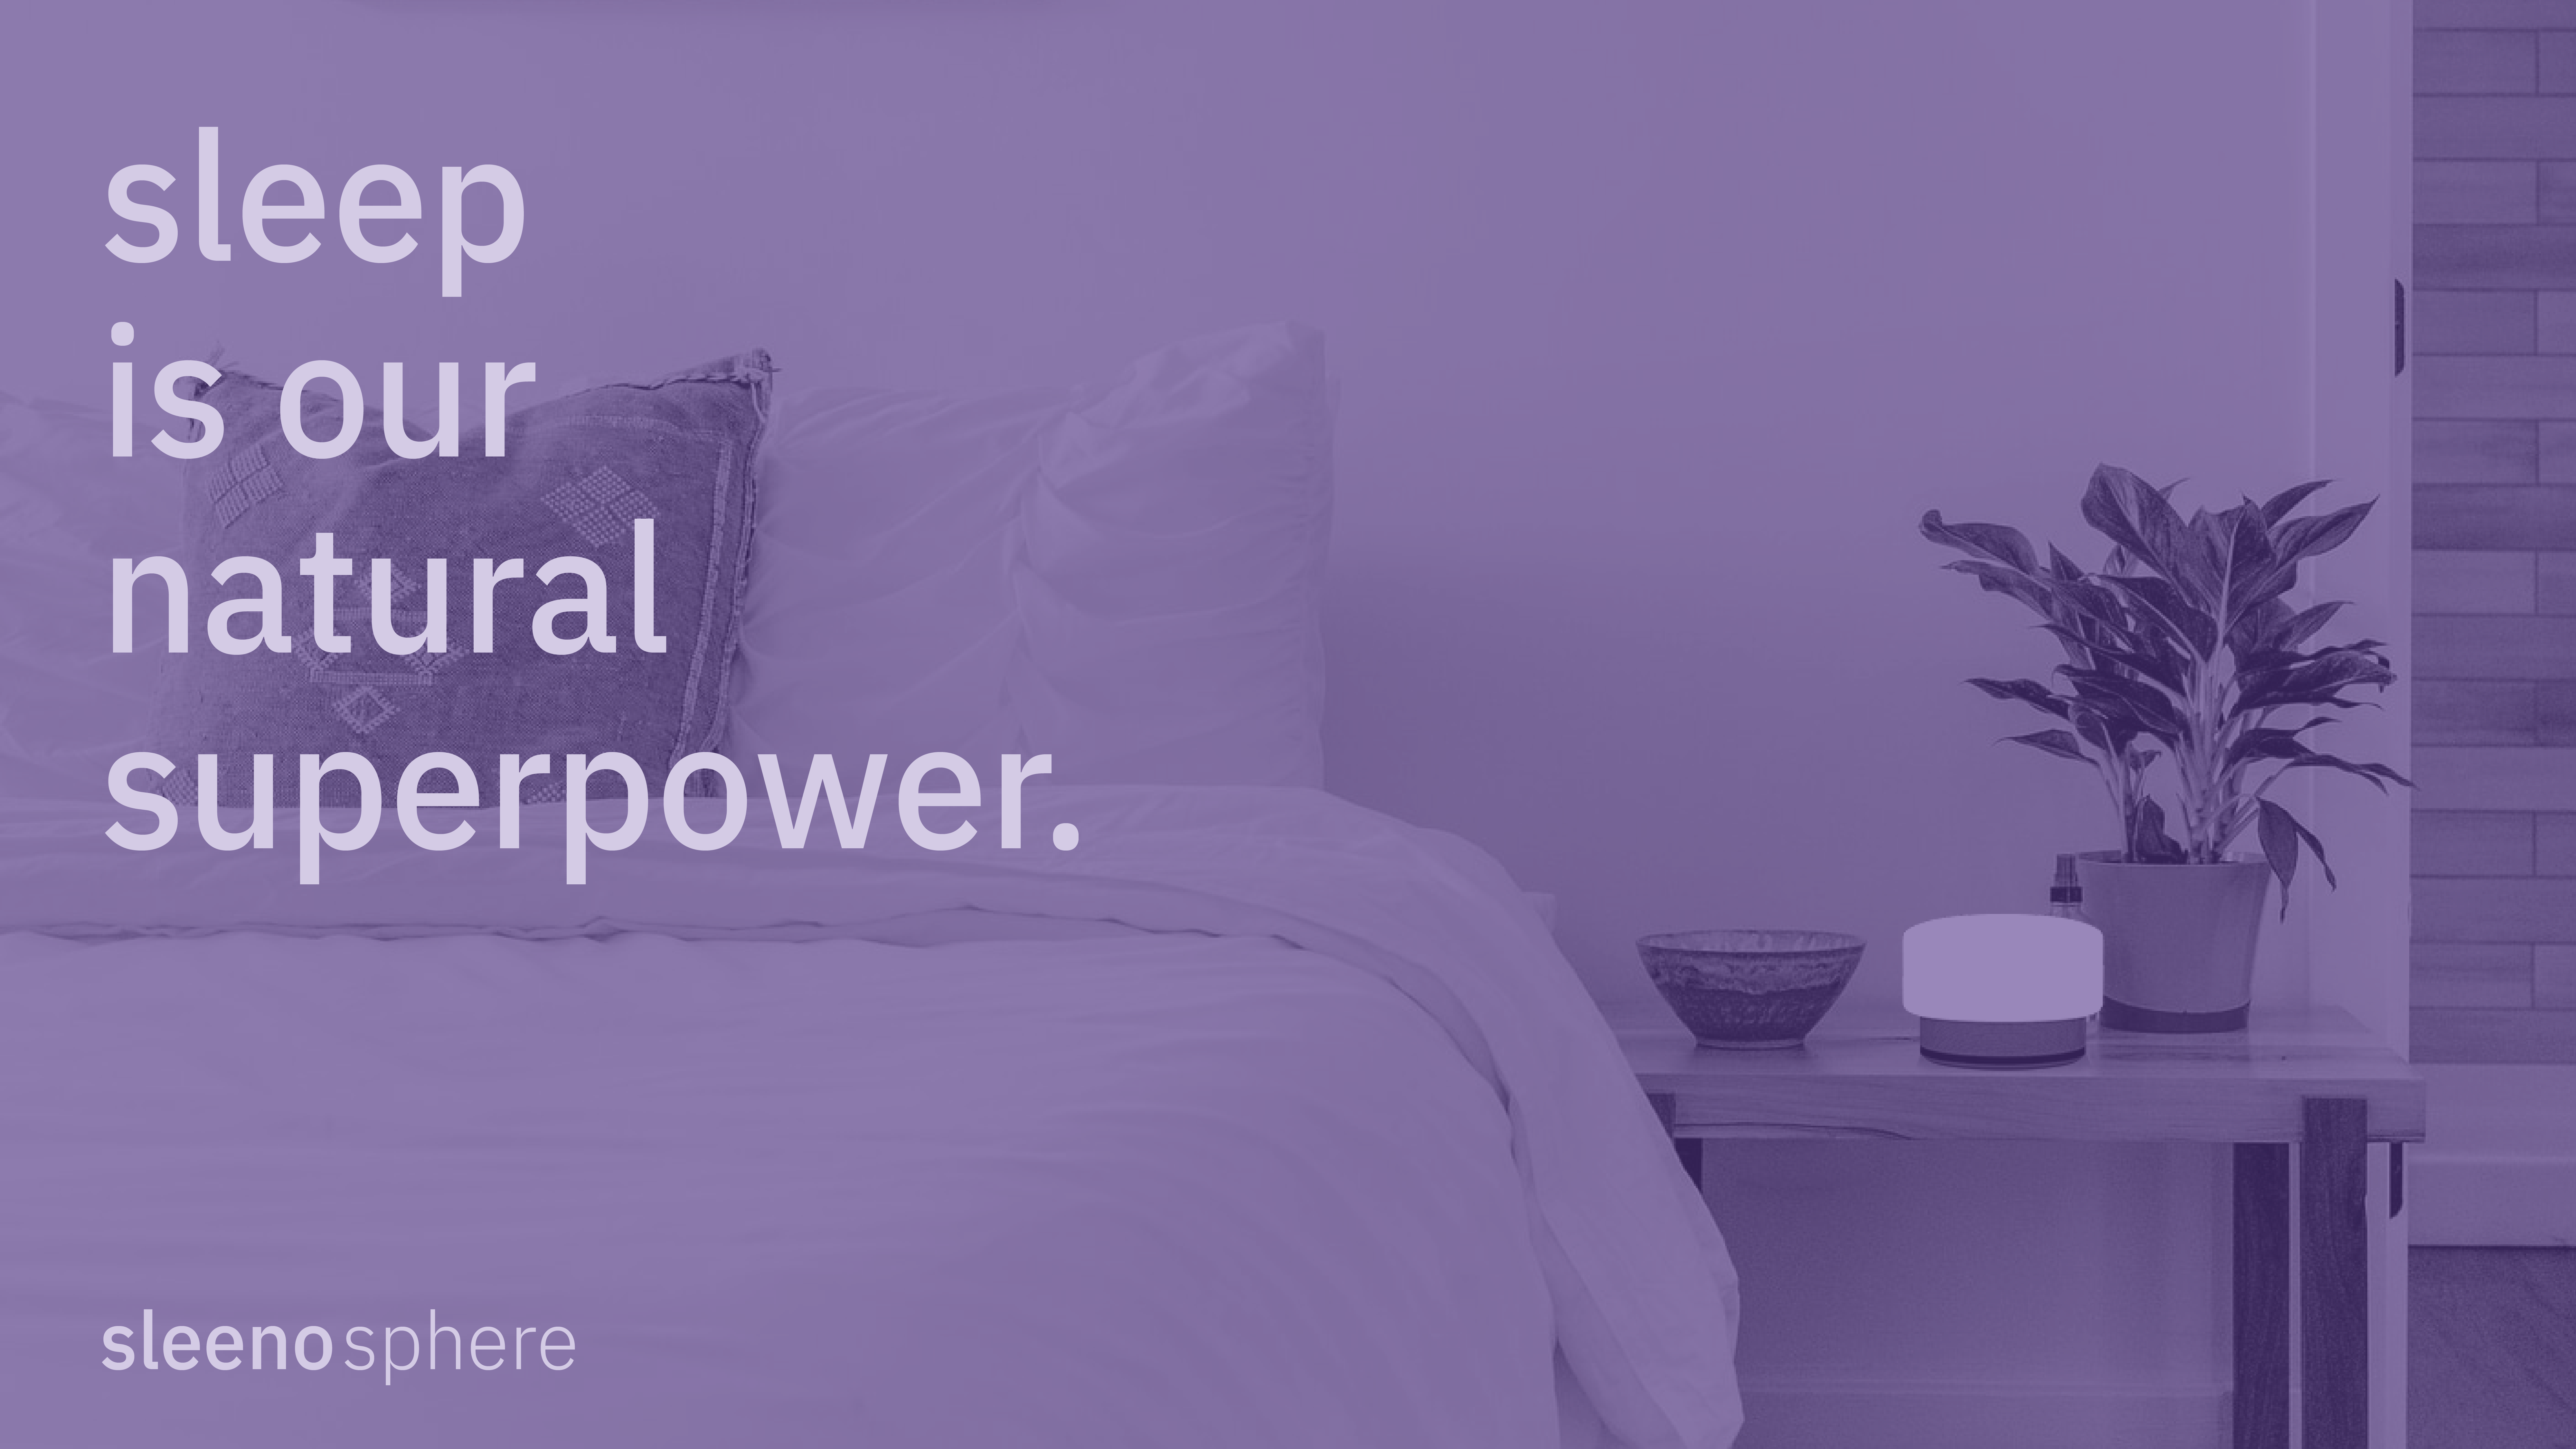 sleeno - sleep is our natural superpower